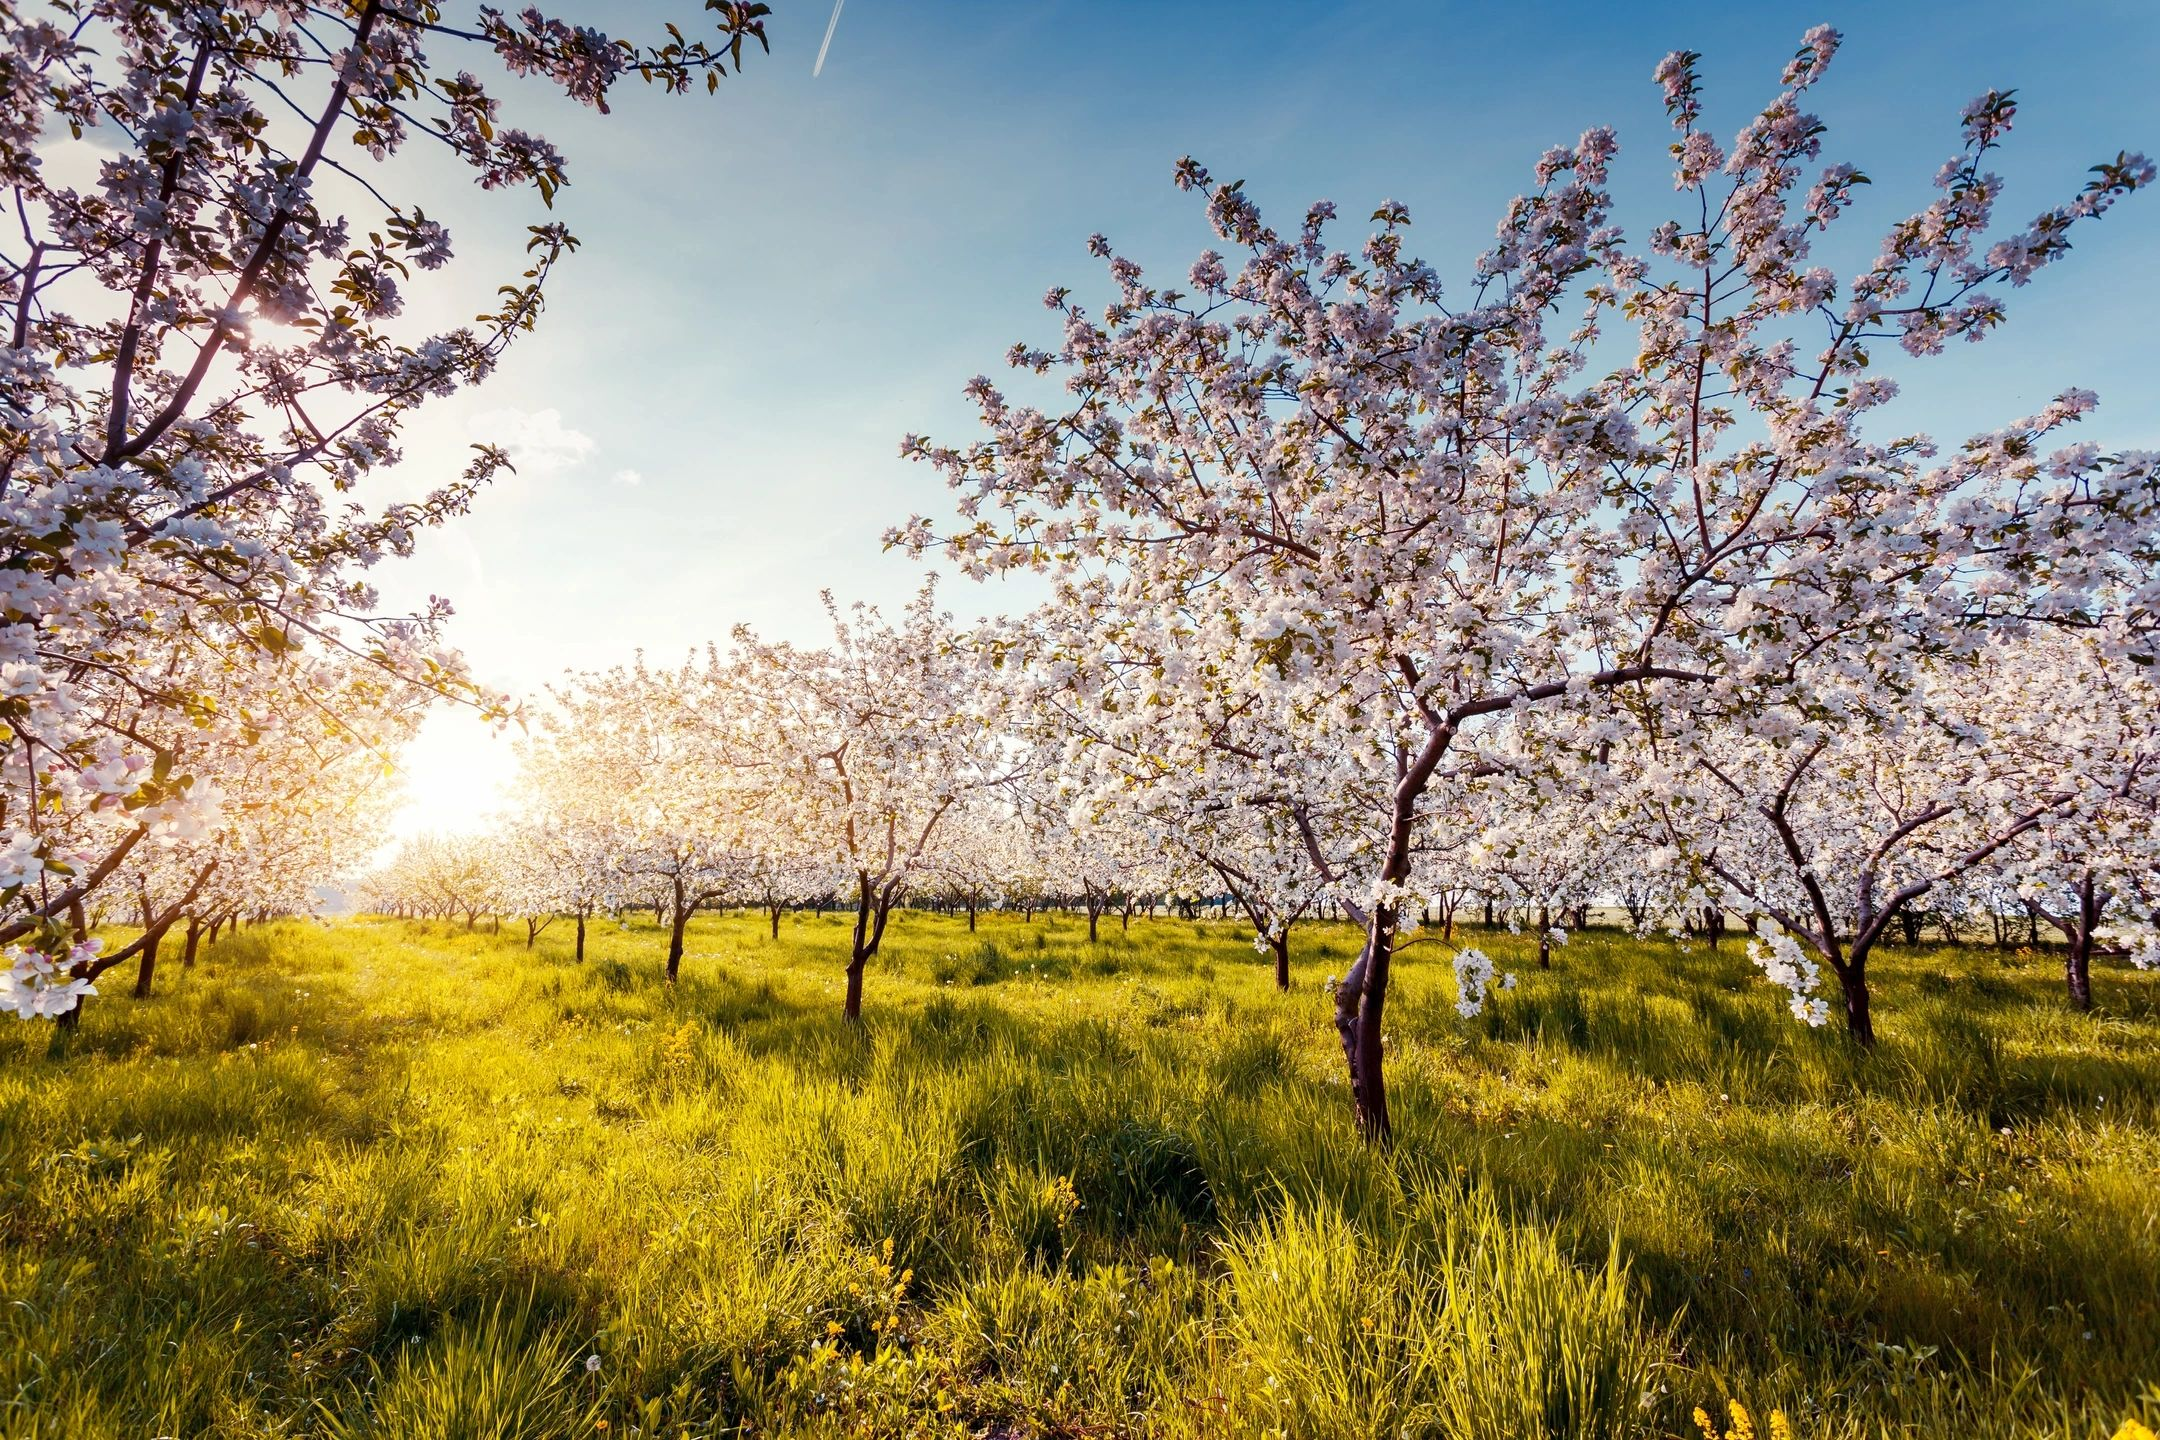 The Spring Season is a Time of Change: How To Accept Change in Your Life